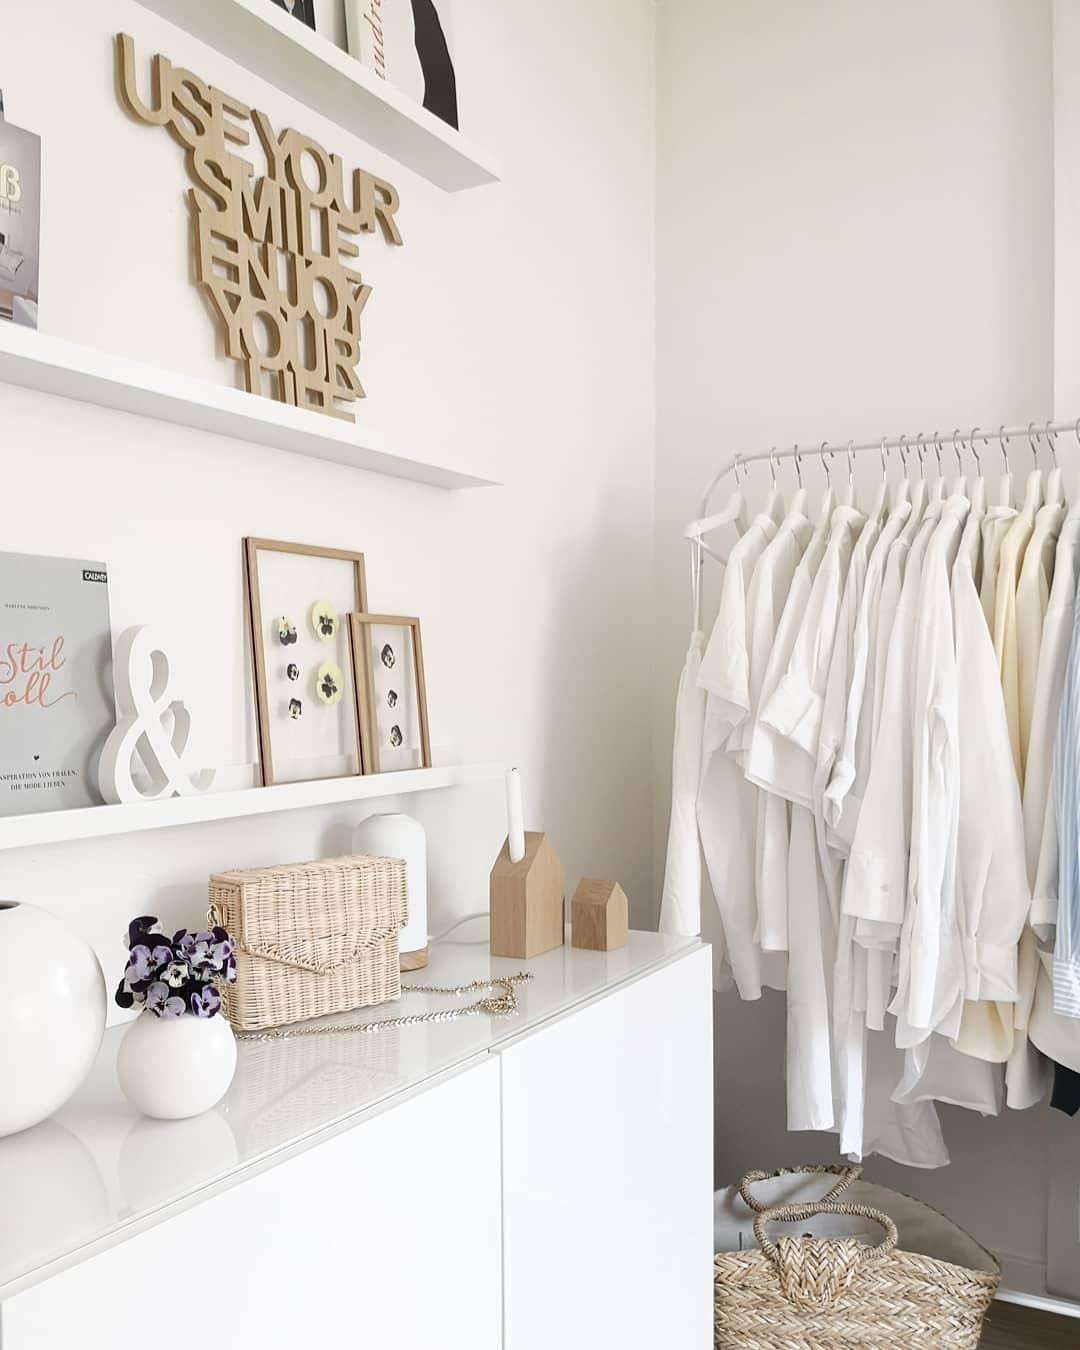 #whiteliving #softminimalism #walkincloset #mädchenkram